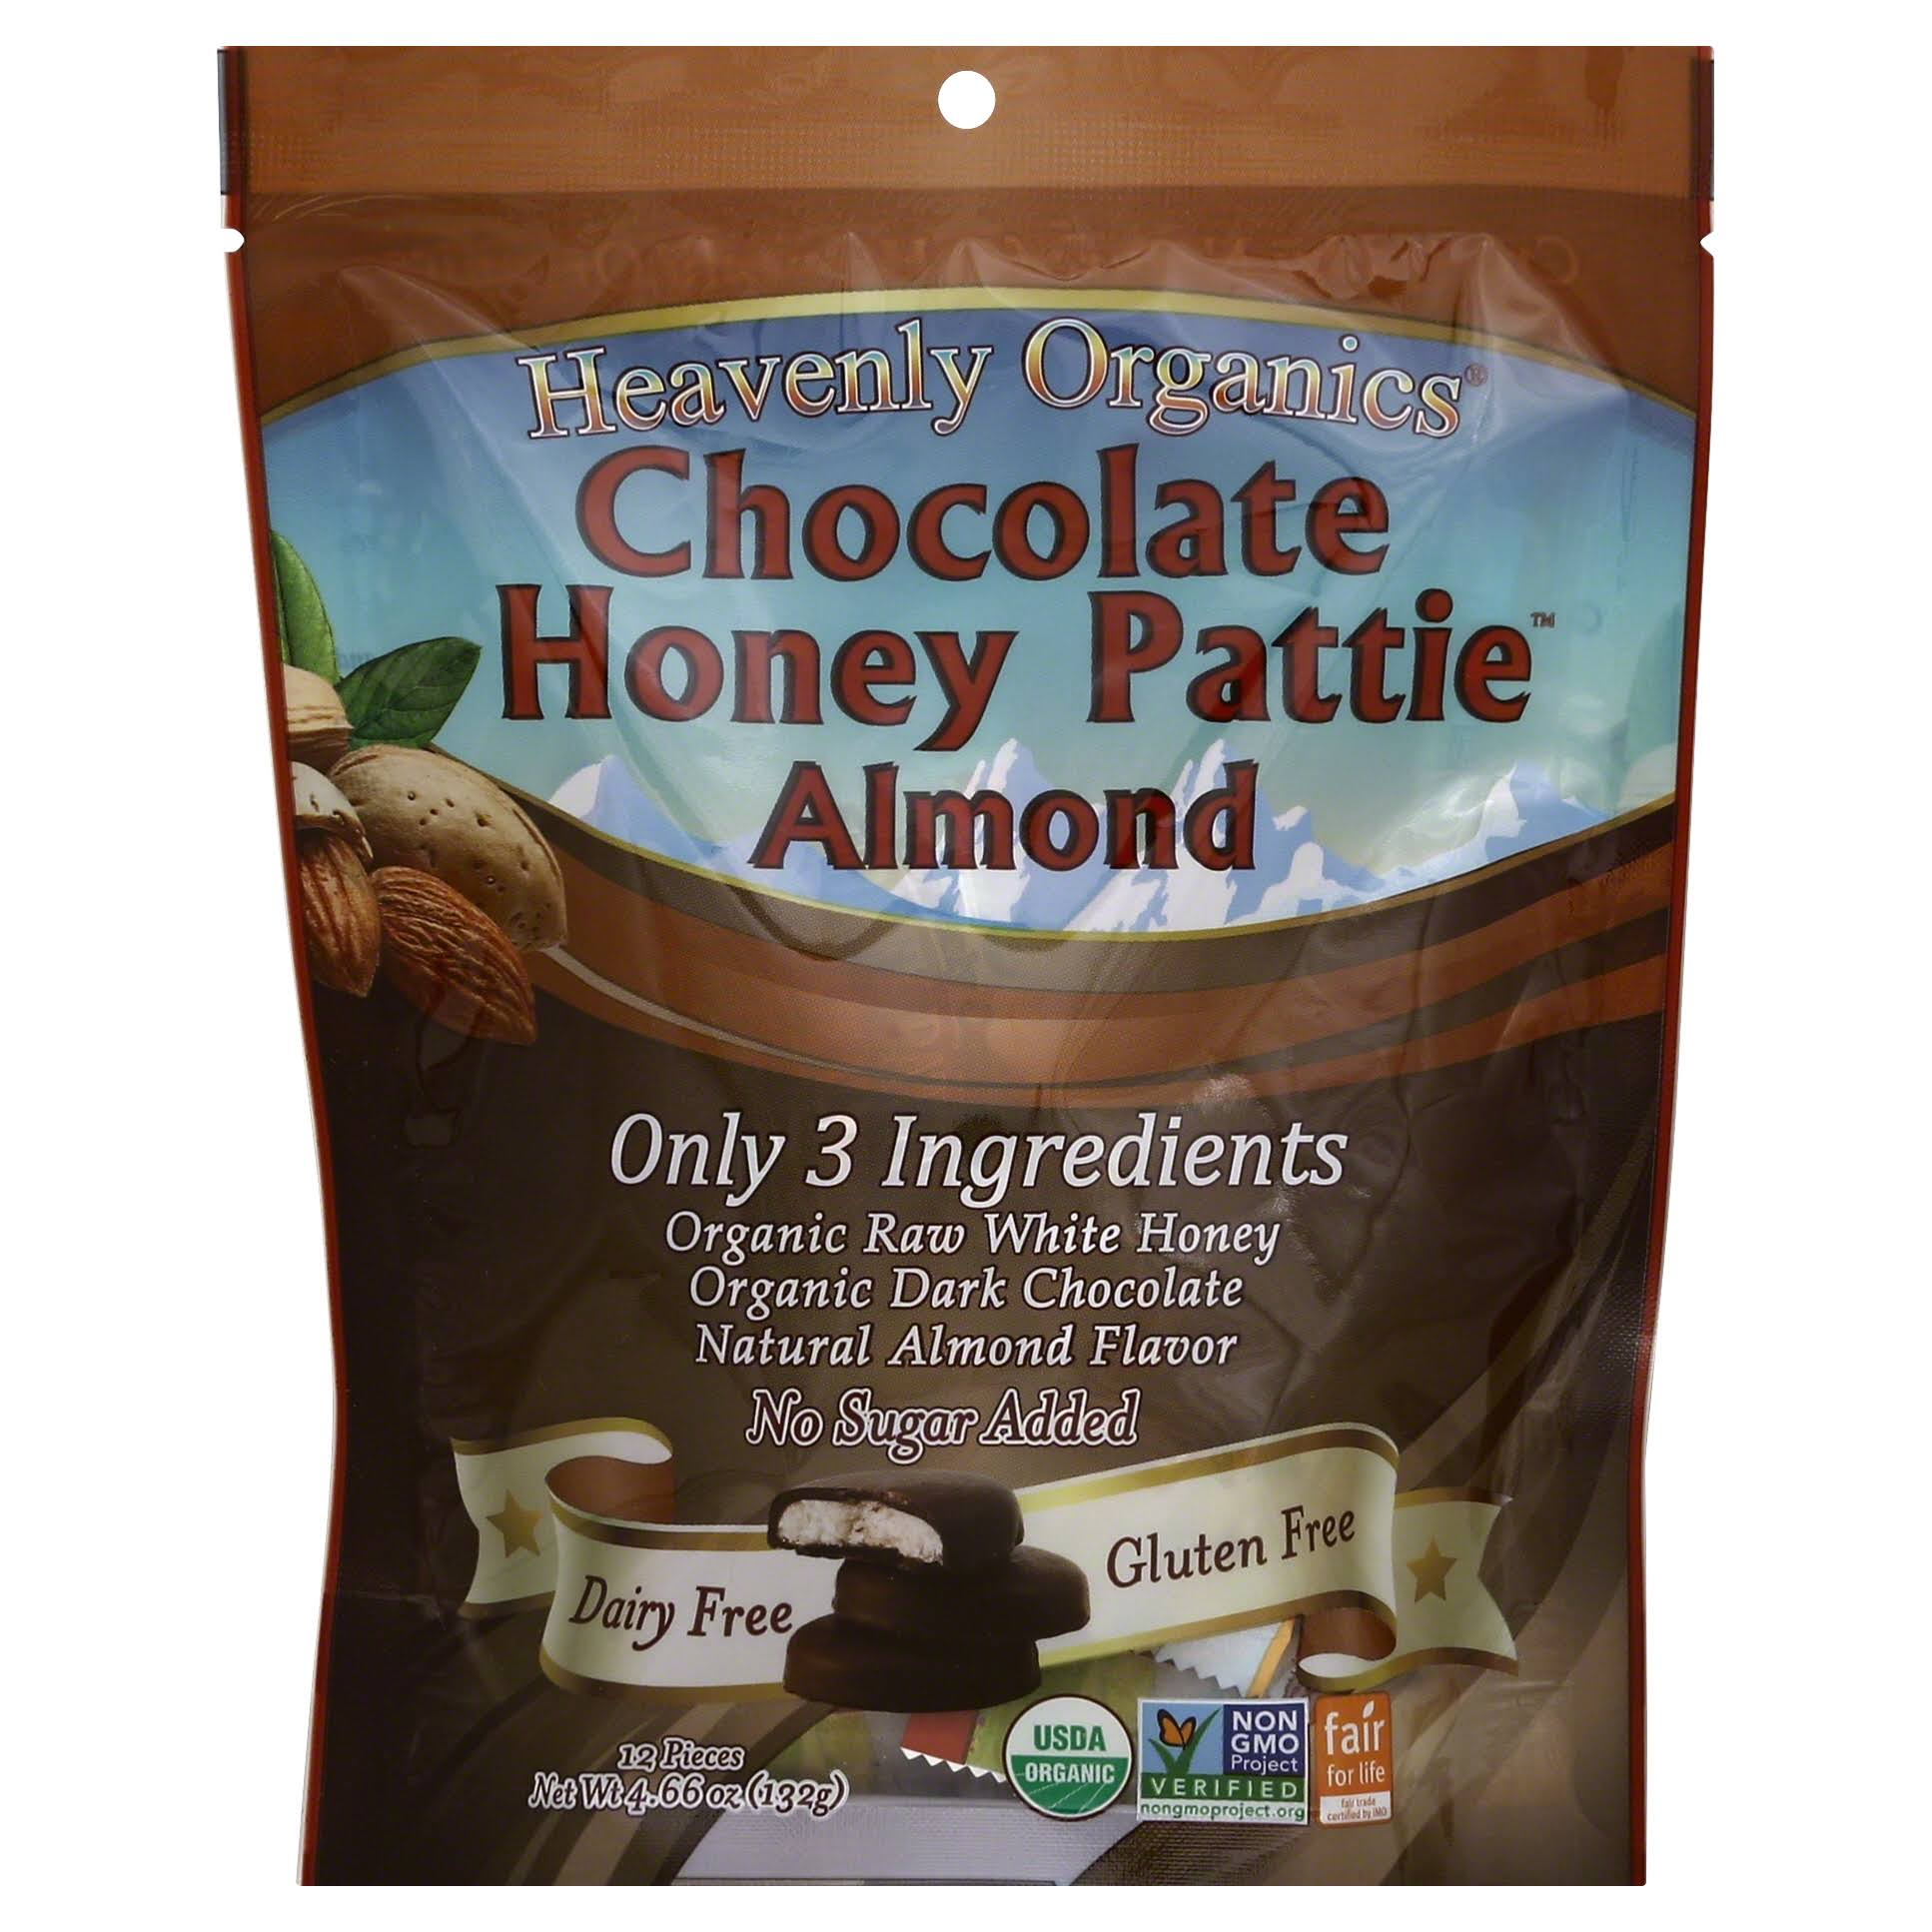 Heavenly Organics Chocolate Honey Patties - Almond, 4.66oz